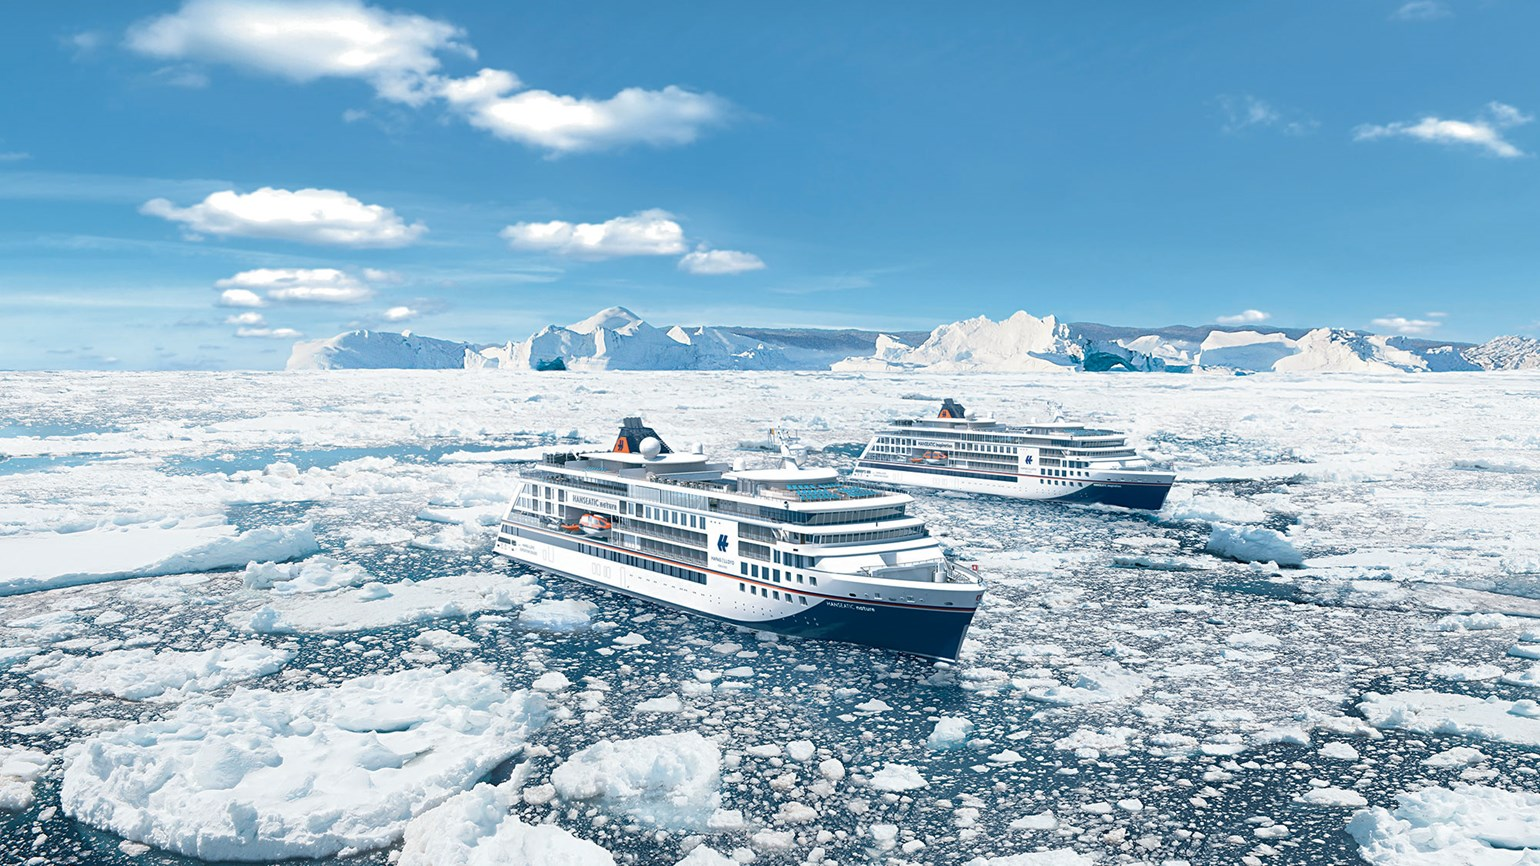 Hapag-Lloyd opening reservations imminently for expedition ships